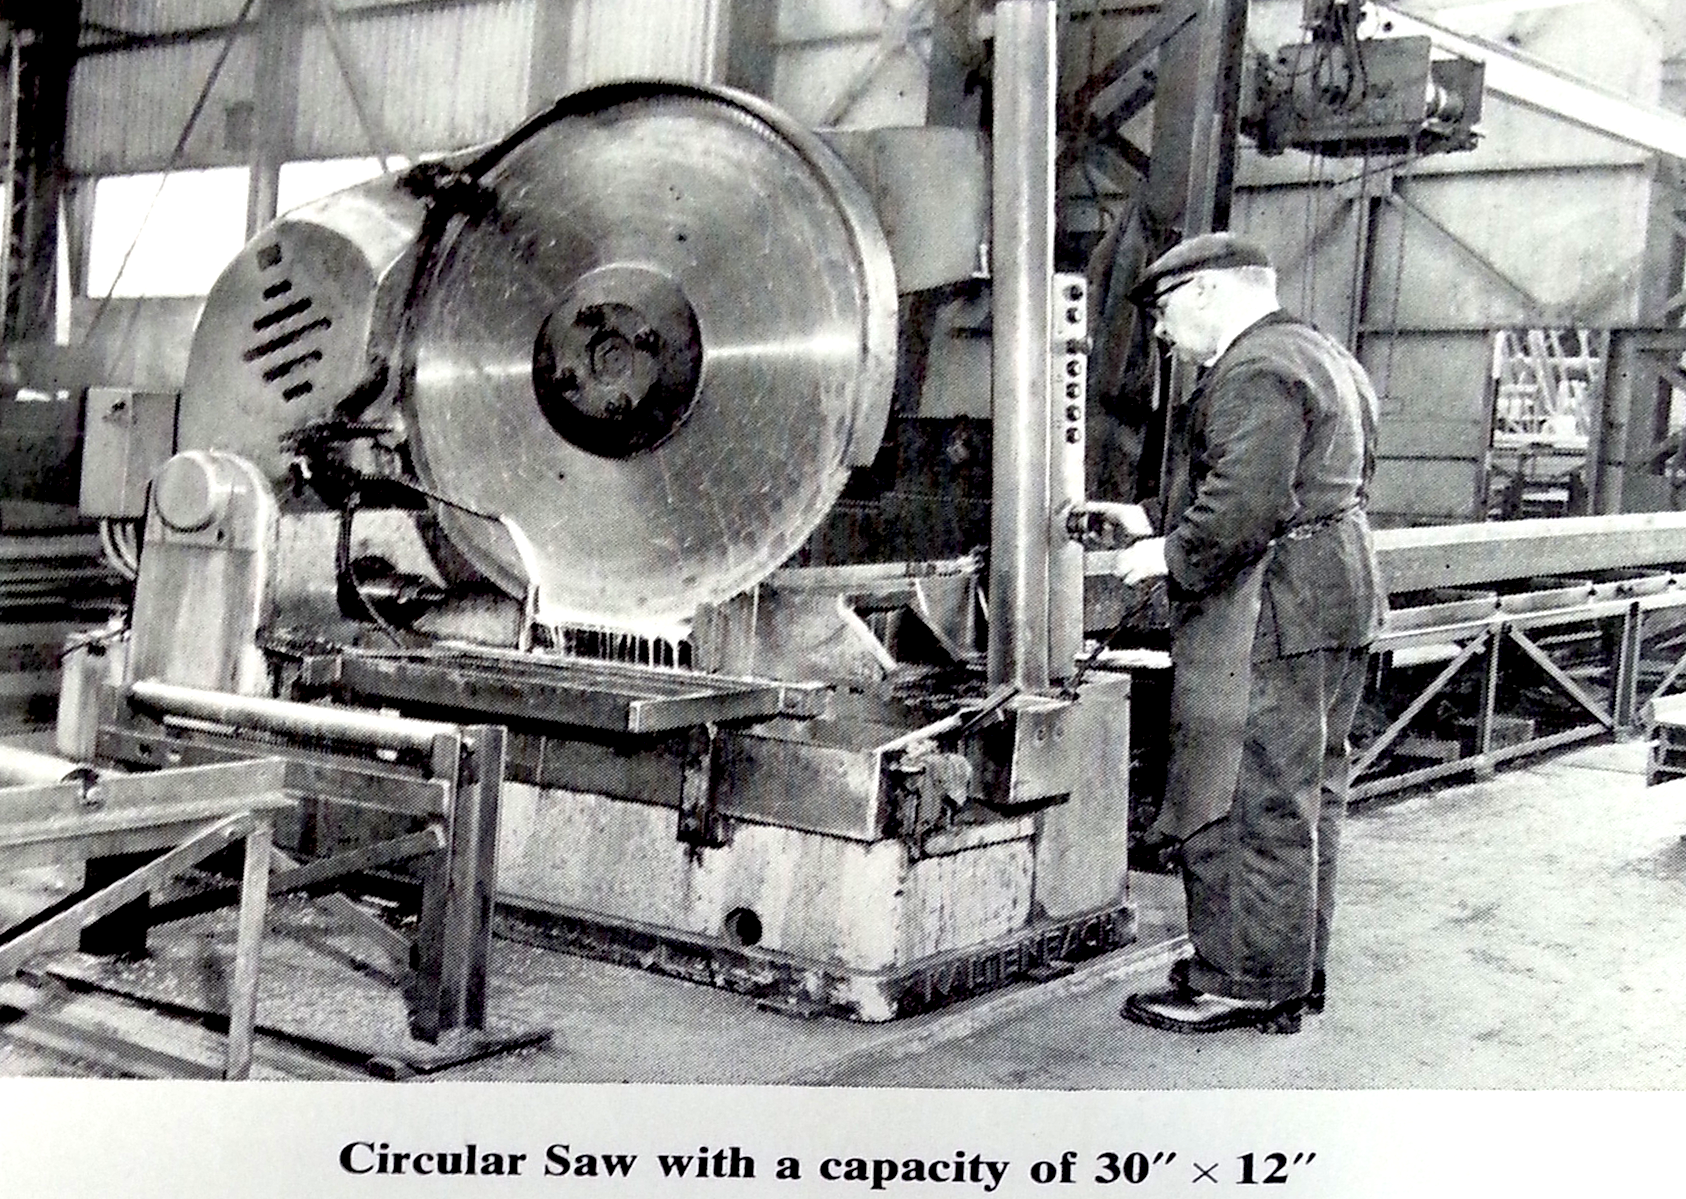 history of circular saw Have for sale 44 early 1900,s circular saw mill blade this blade is prior to blades manufactured to accept insert teeth take a look at pictures and see for yourself.